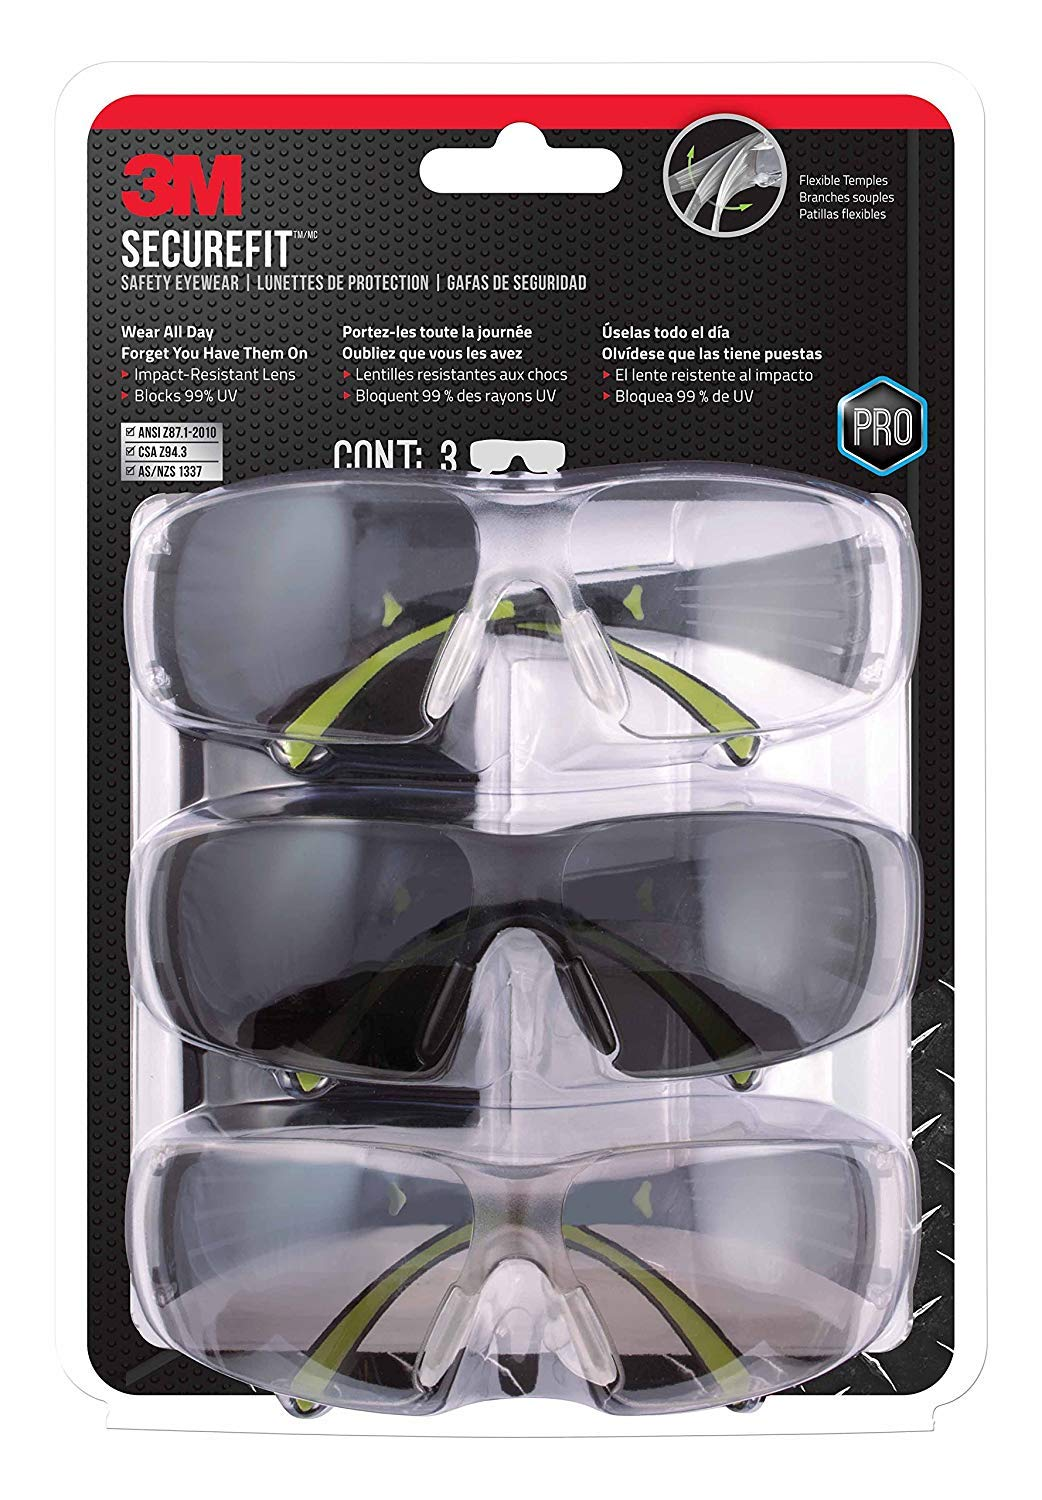 3M SF400-W-3PK-PS Secure-Fit 400 Anti-Fog Eye Protection Glasses, Multi-Pack (3 Pack) (2) by 3M Safety